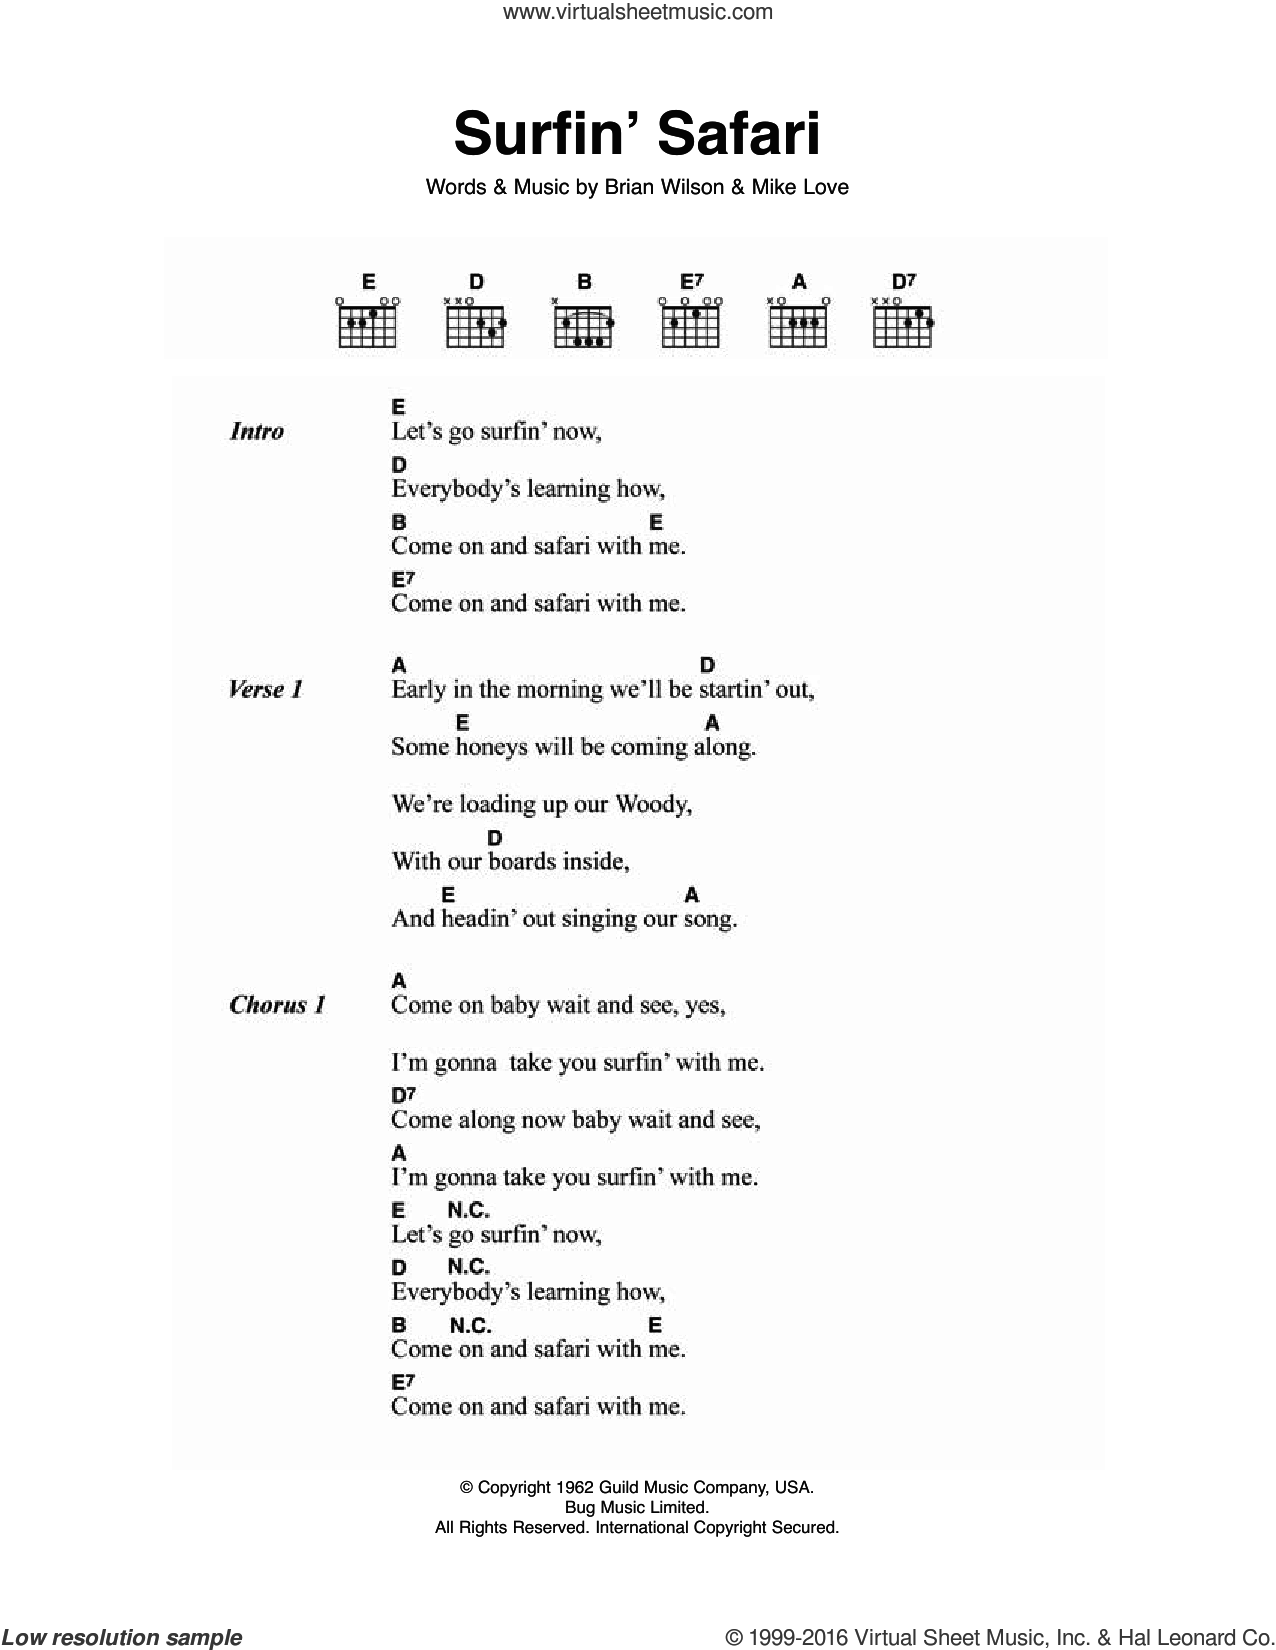 Surfin' Safari sheet music for guitar (chords) by The Beach Boys, Brian Wilson and Mike Love, intermediate skill level